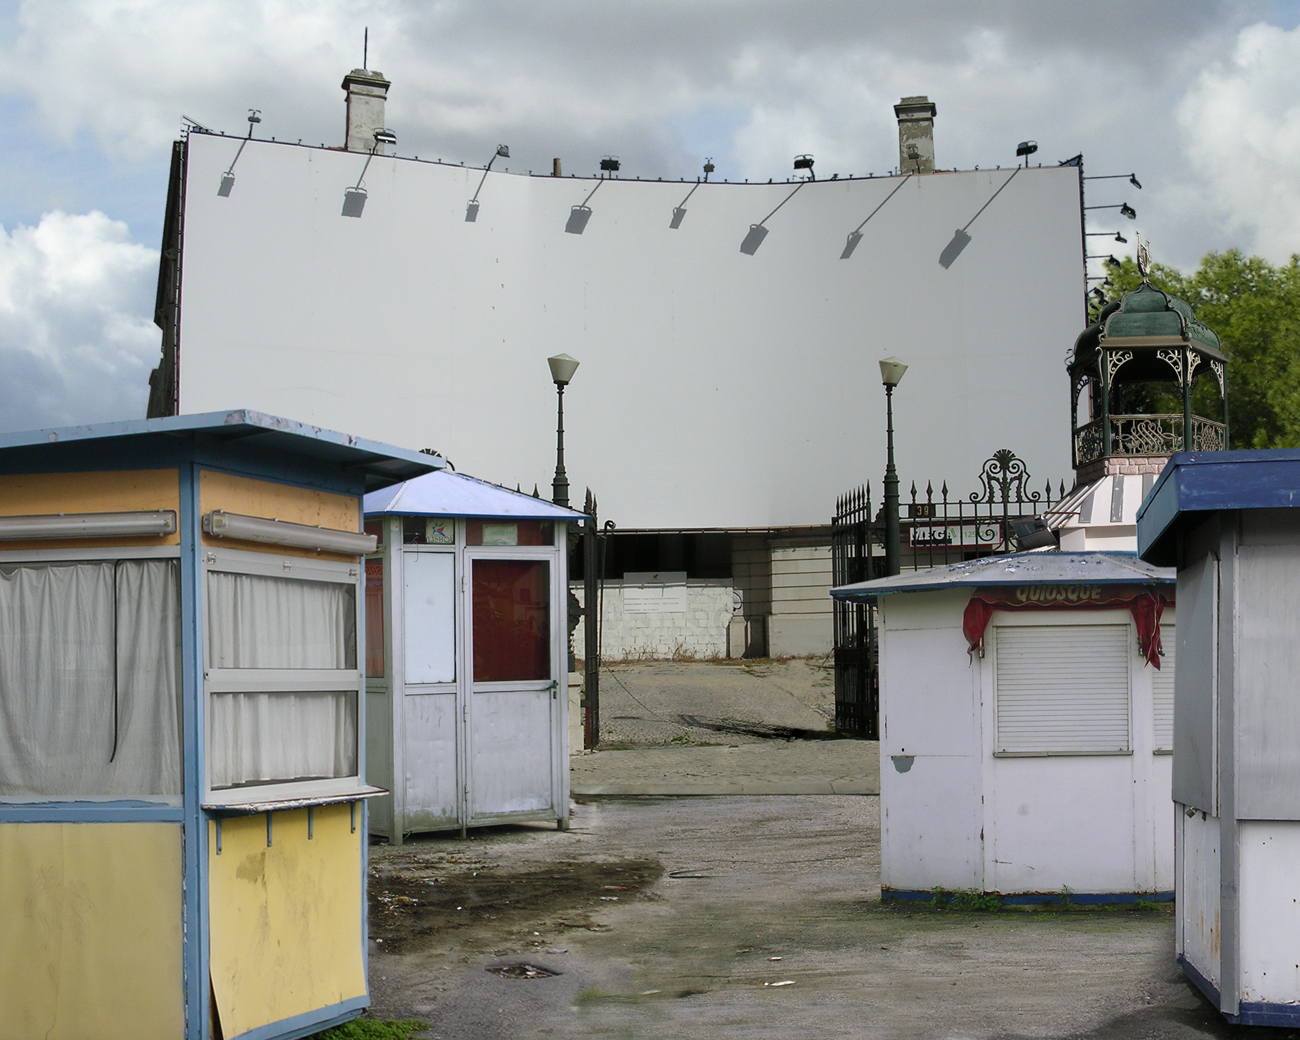 photomontage of empty billboard surface and decrepit kiosks